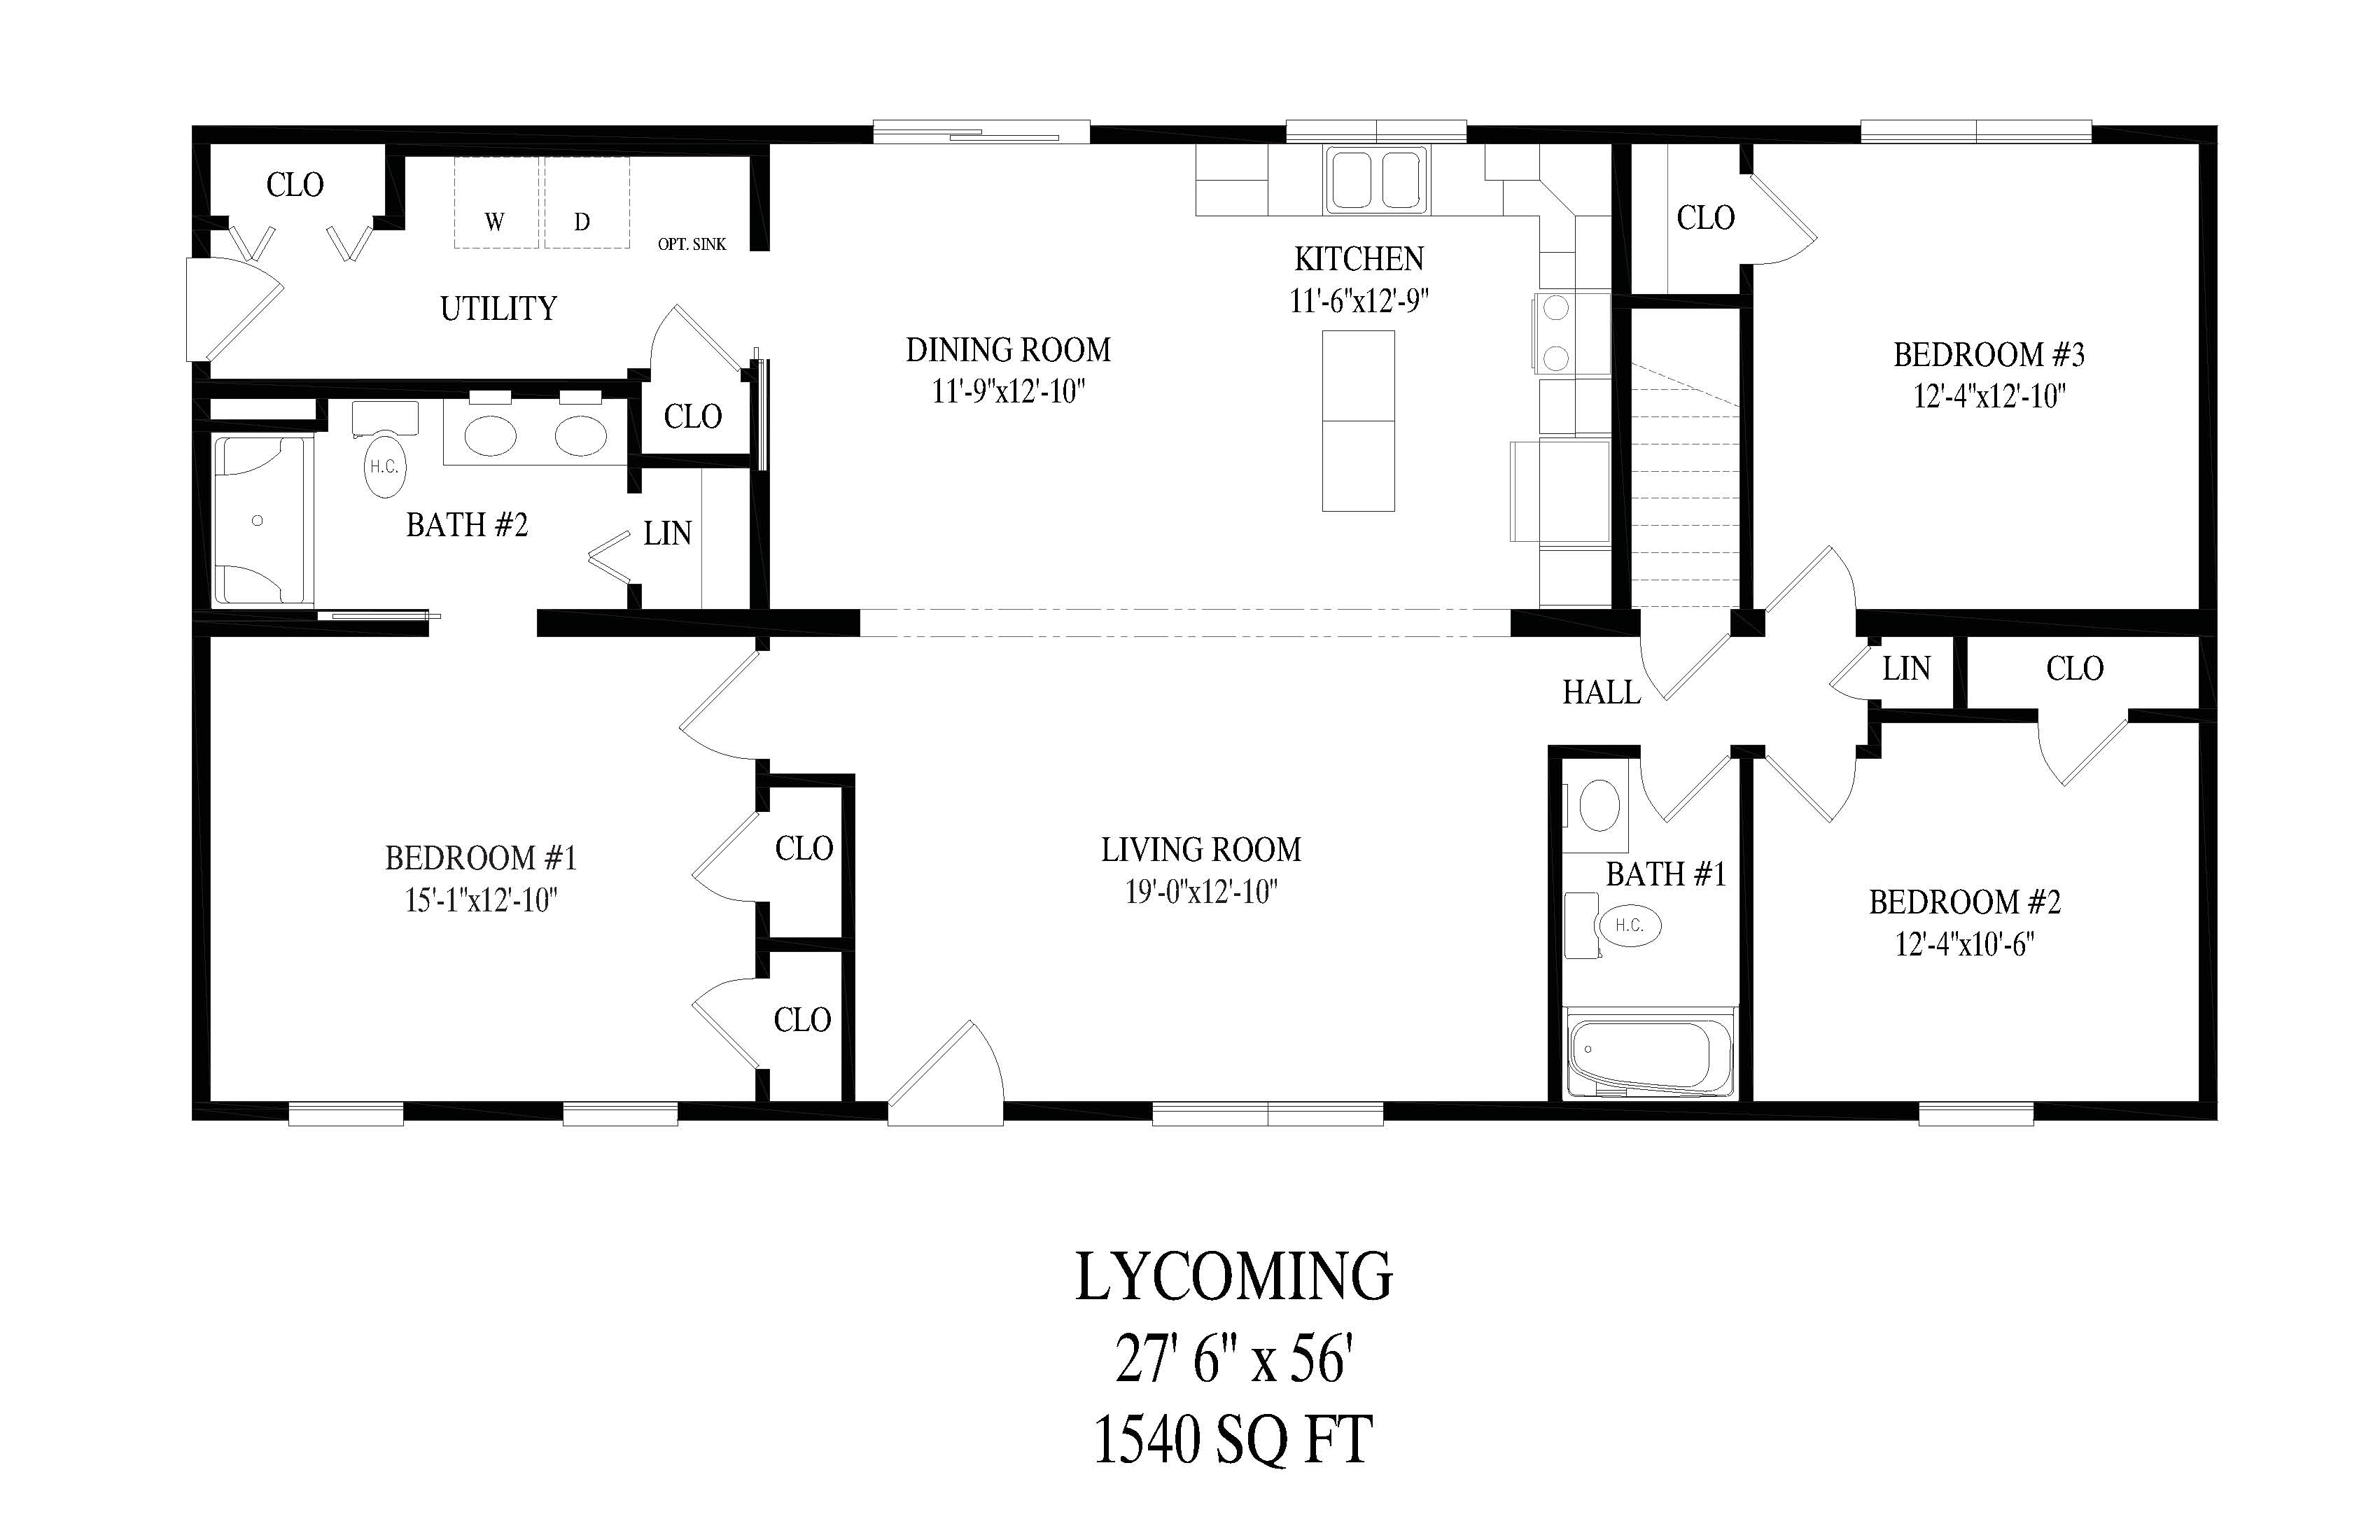 this http://custombuildingsystems.net/wp-content/uploads/2018/06/Lycoming-Floor-Plan.jpg